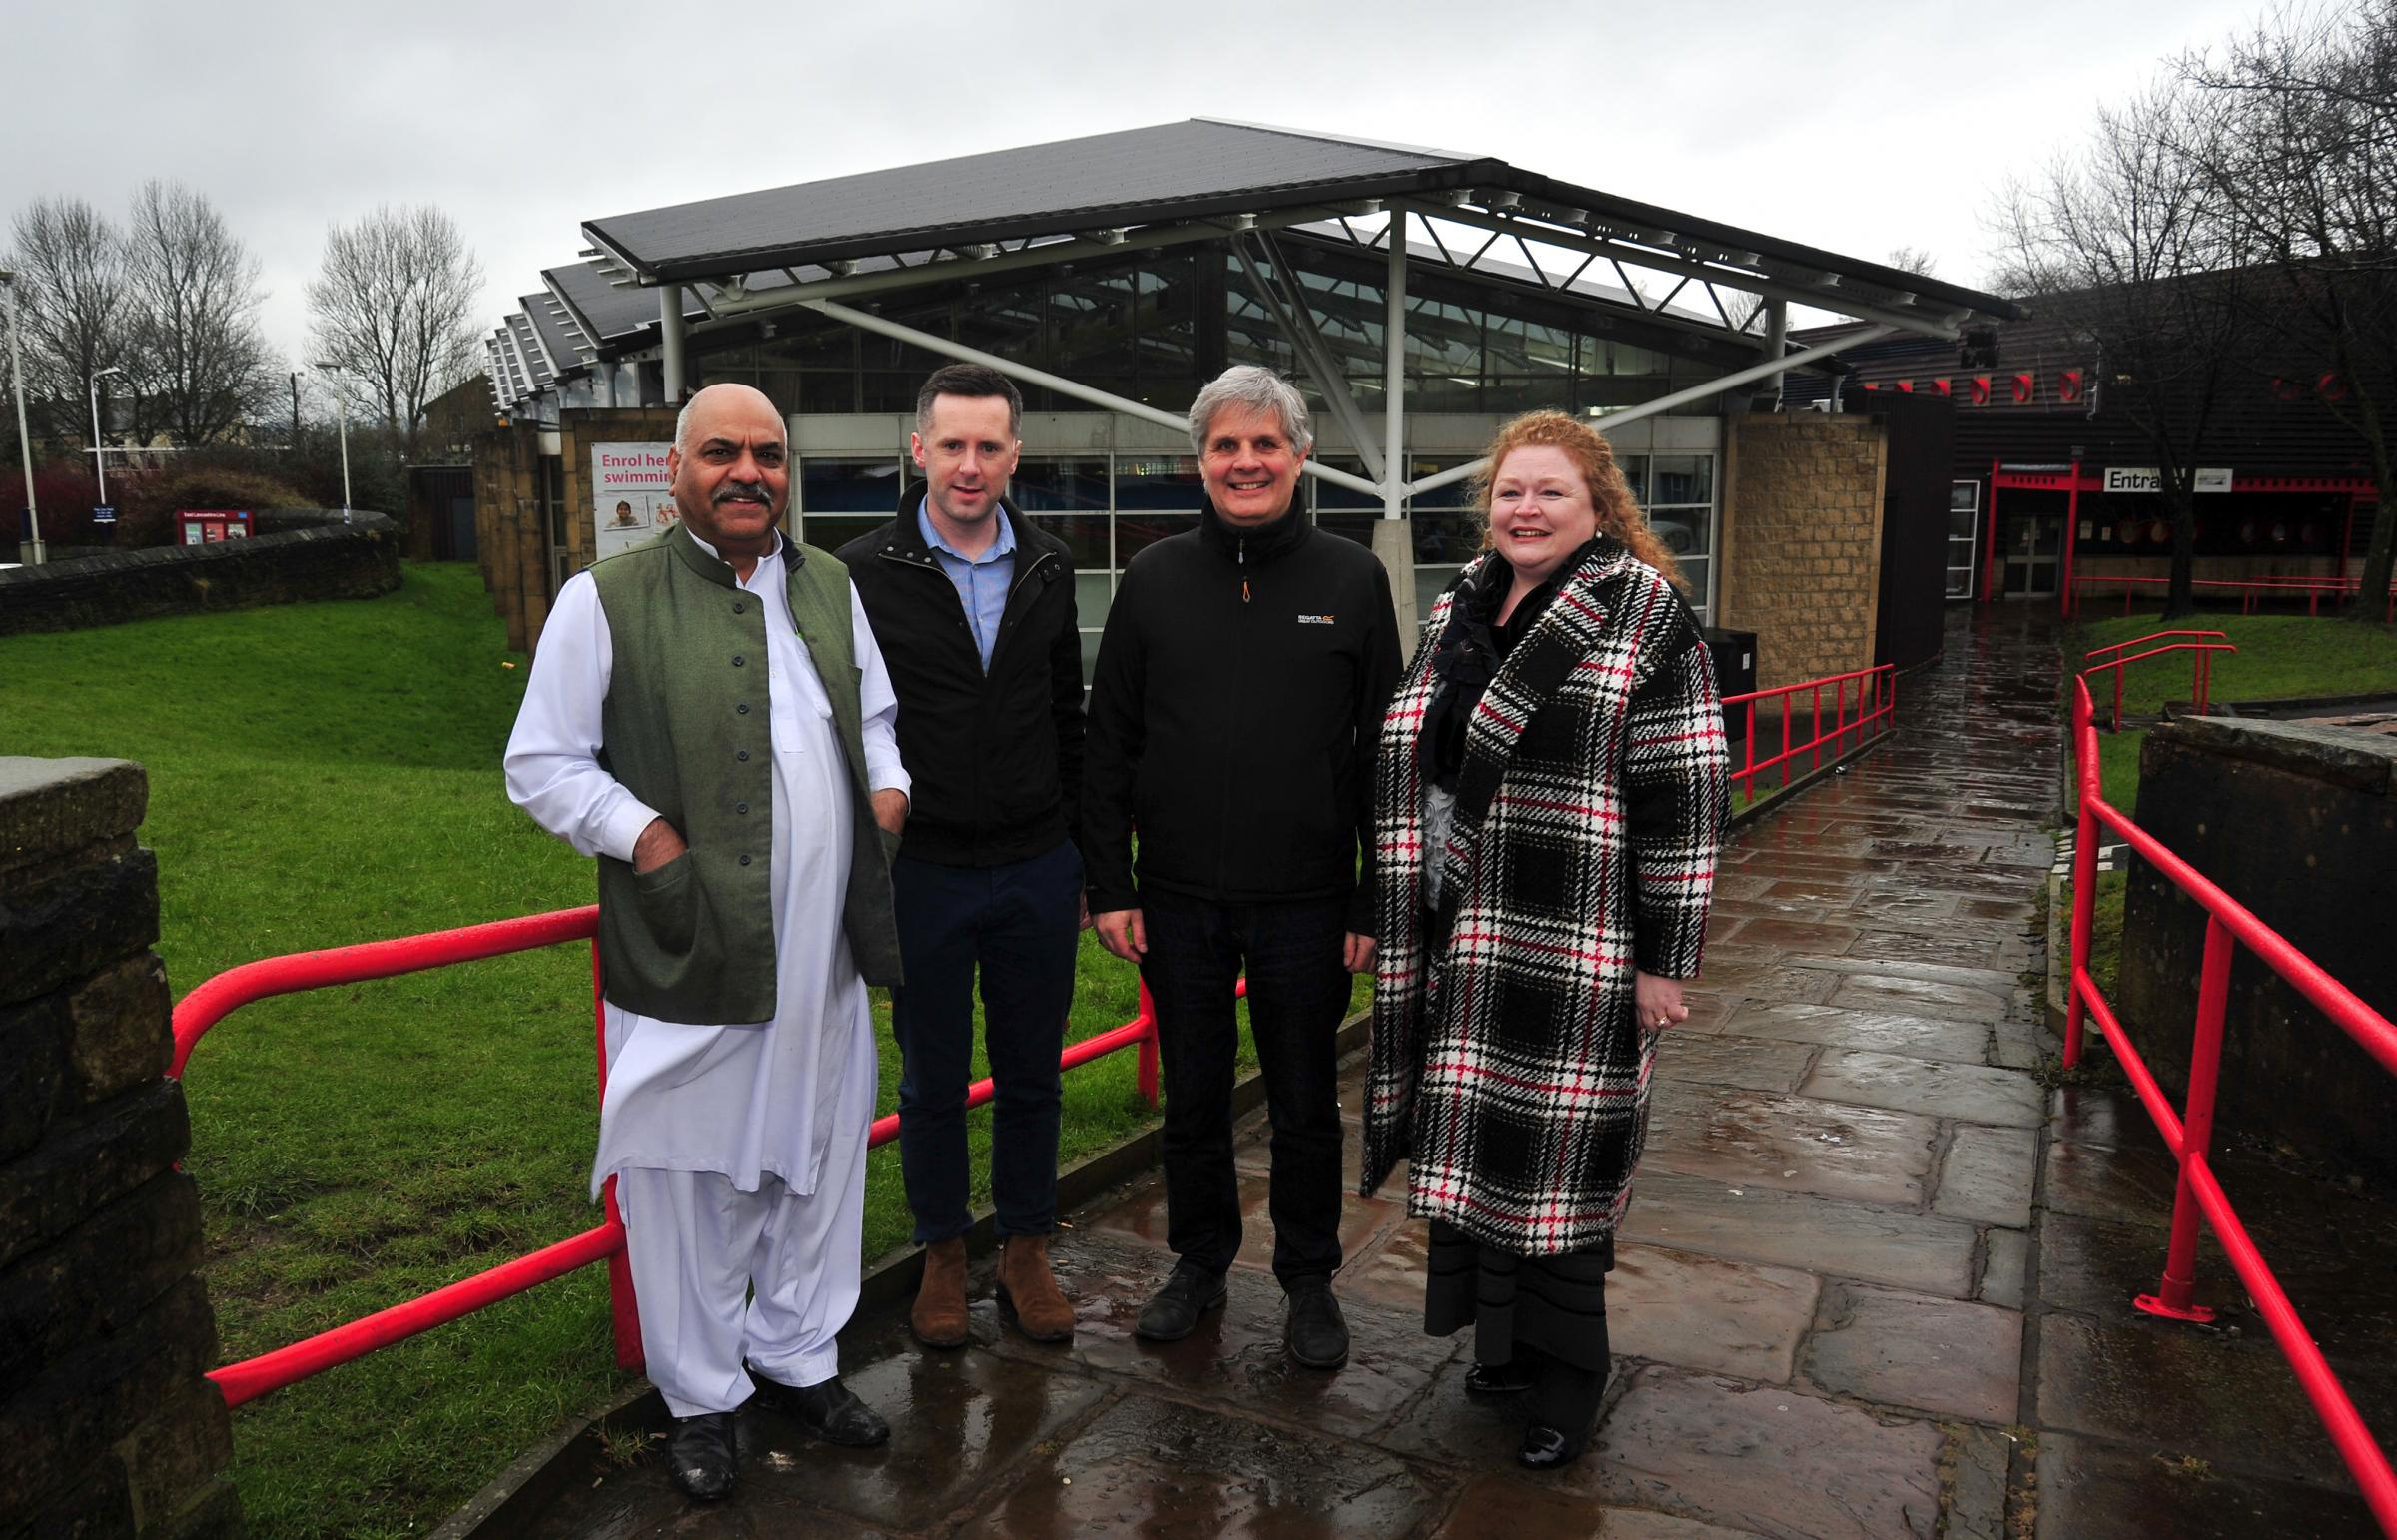 From left: Mohammad Aslam, with fellow Conservatives politicians Paul White, Paul Foxley and Sarah Cockburn-Price at Colne Sports Hall.